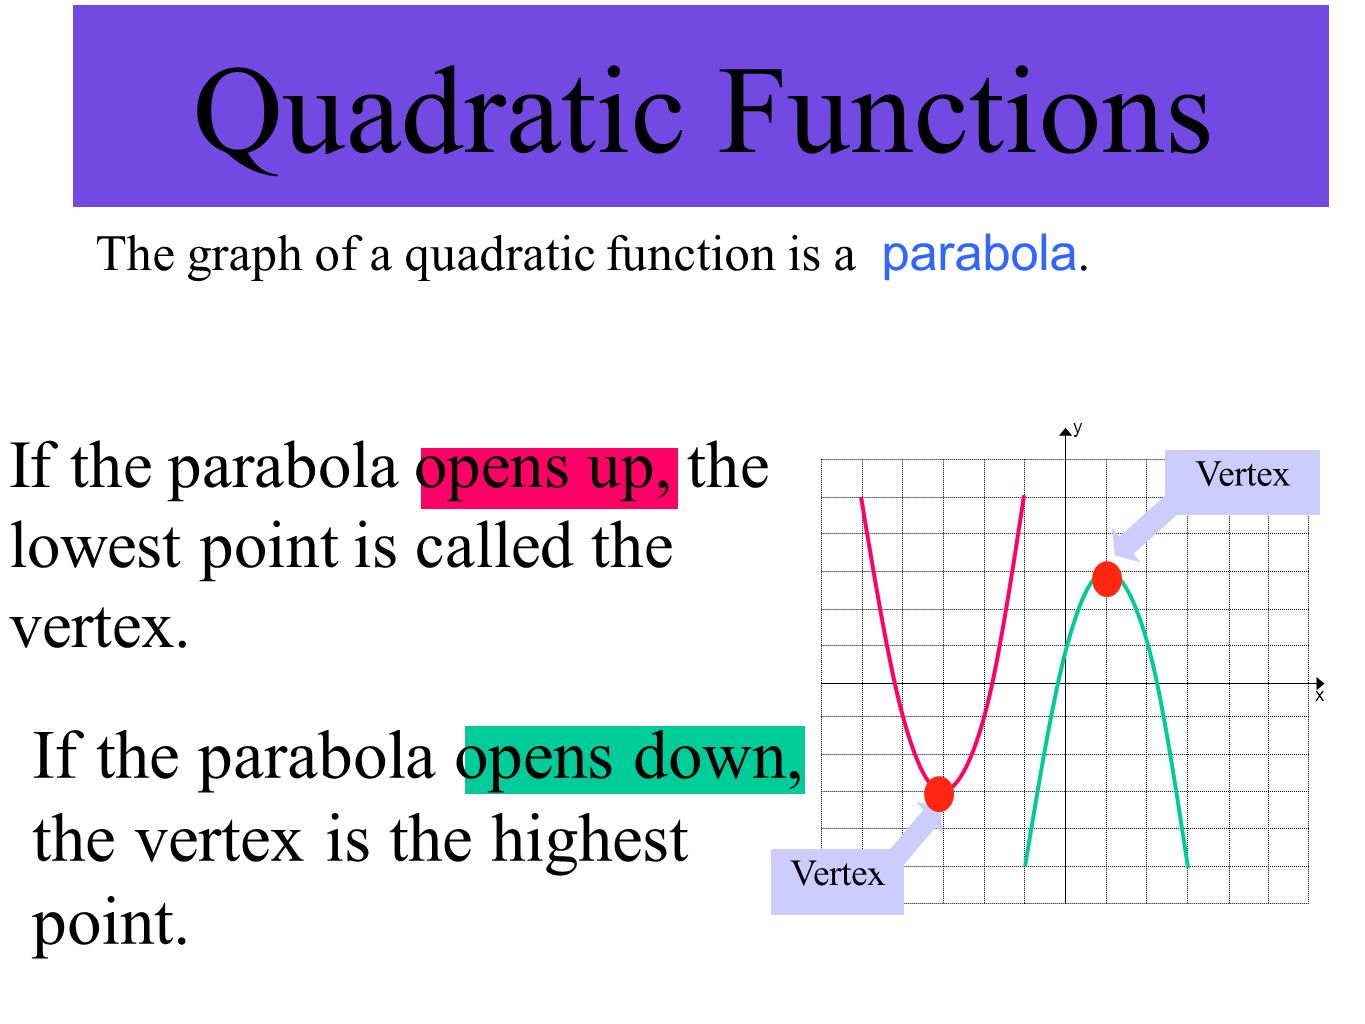 Quadratic Functions The graph of a quadratic function is a parabola. If the parabola opens up, the lowest point is called the vertex. If the parabola